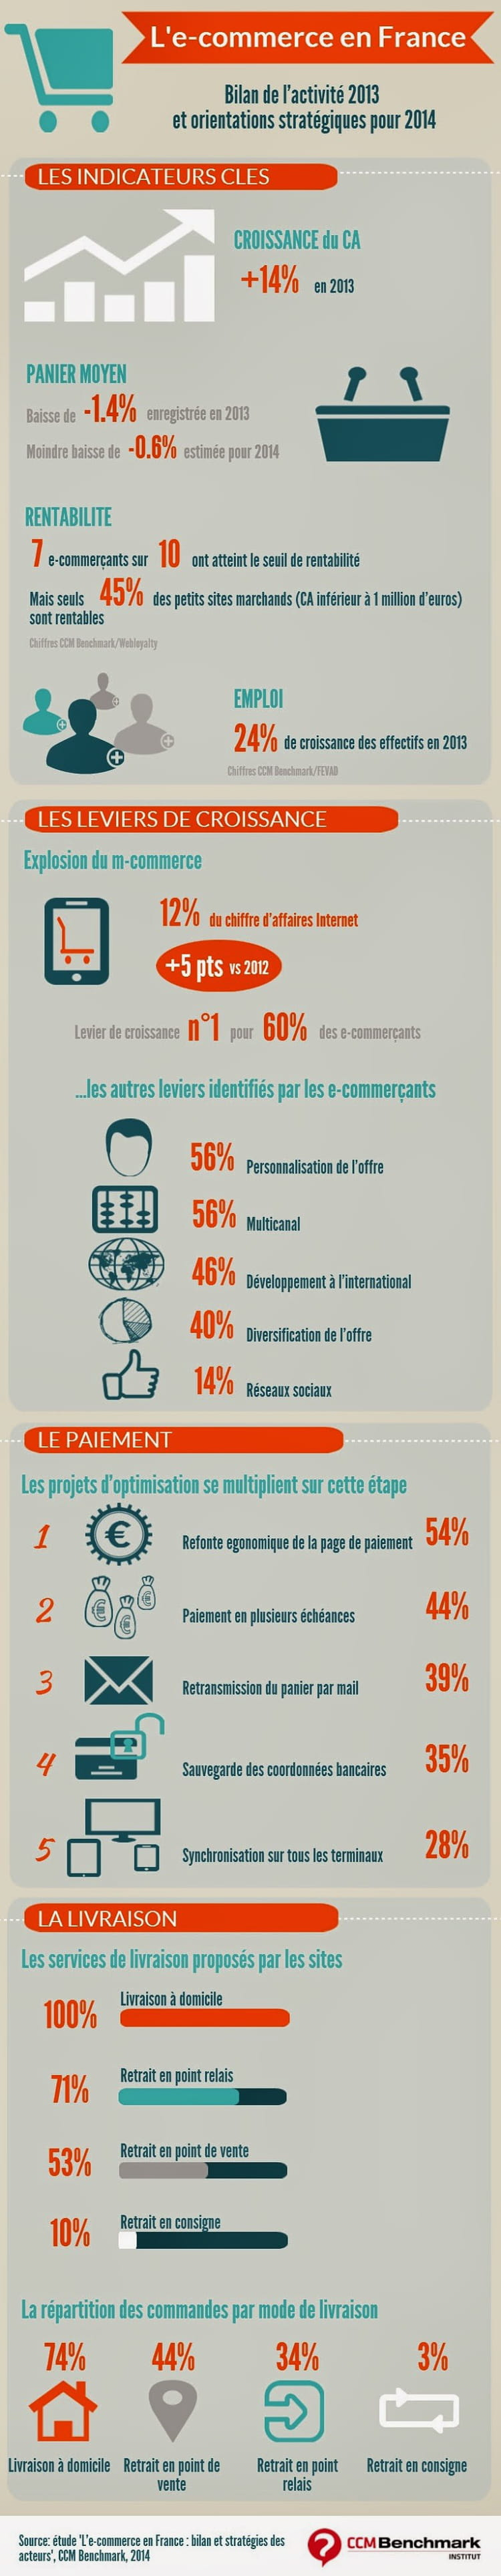 infographie e commerce 2014